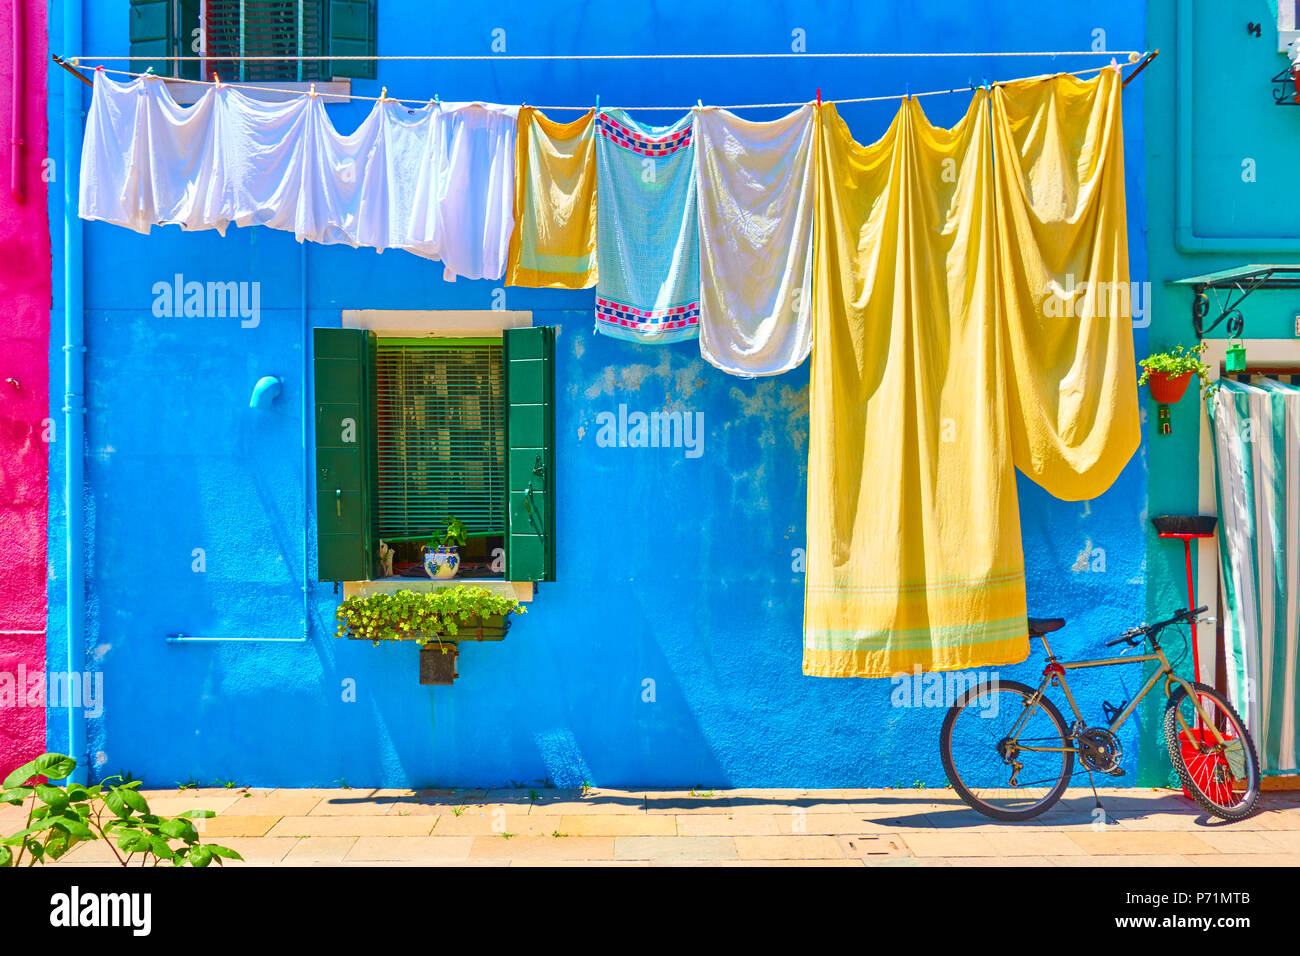 Colorful houses in Burano and airing linen in the street, Venice, Italy - Stock Image